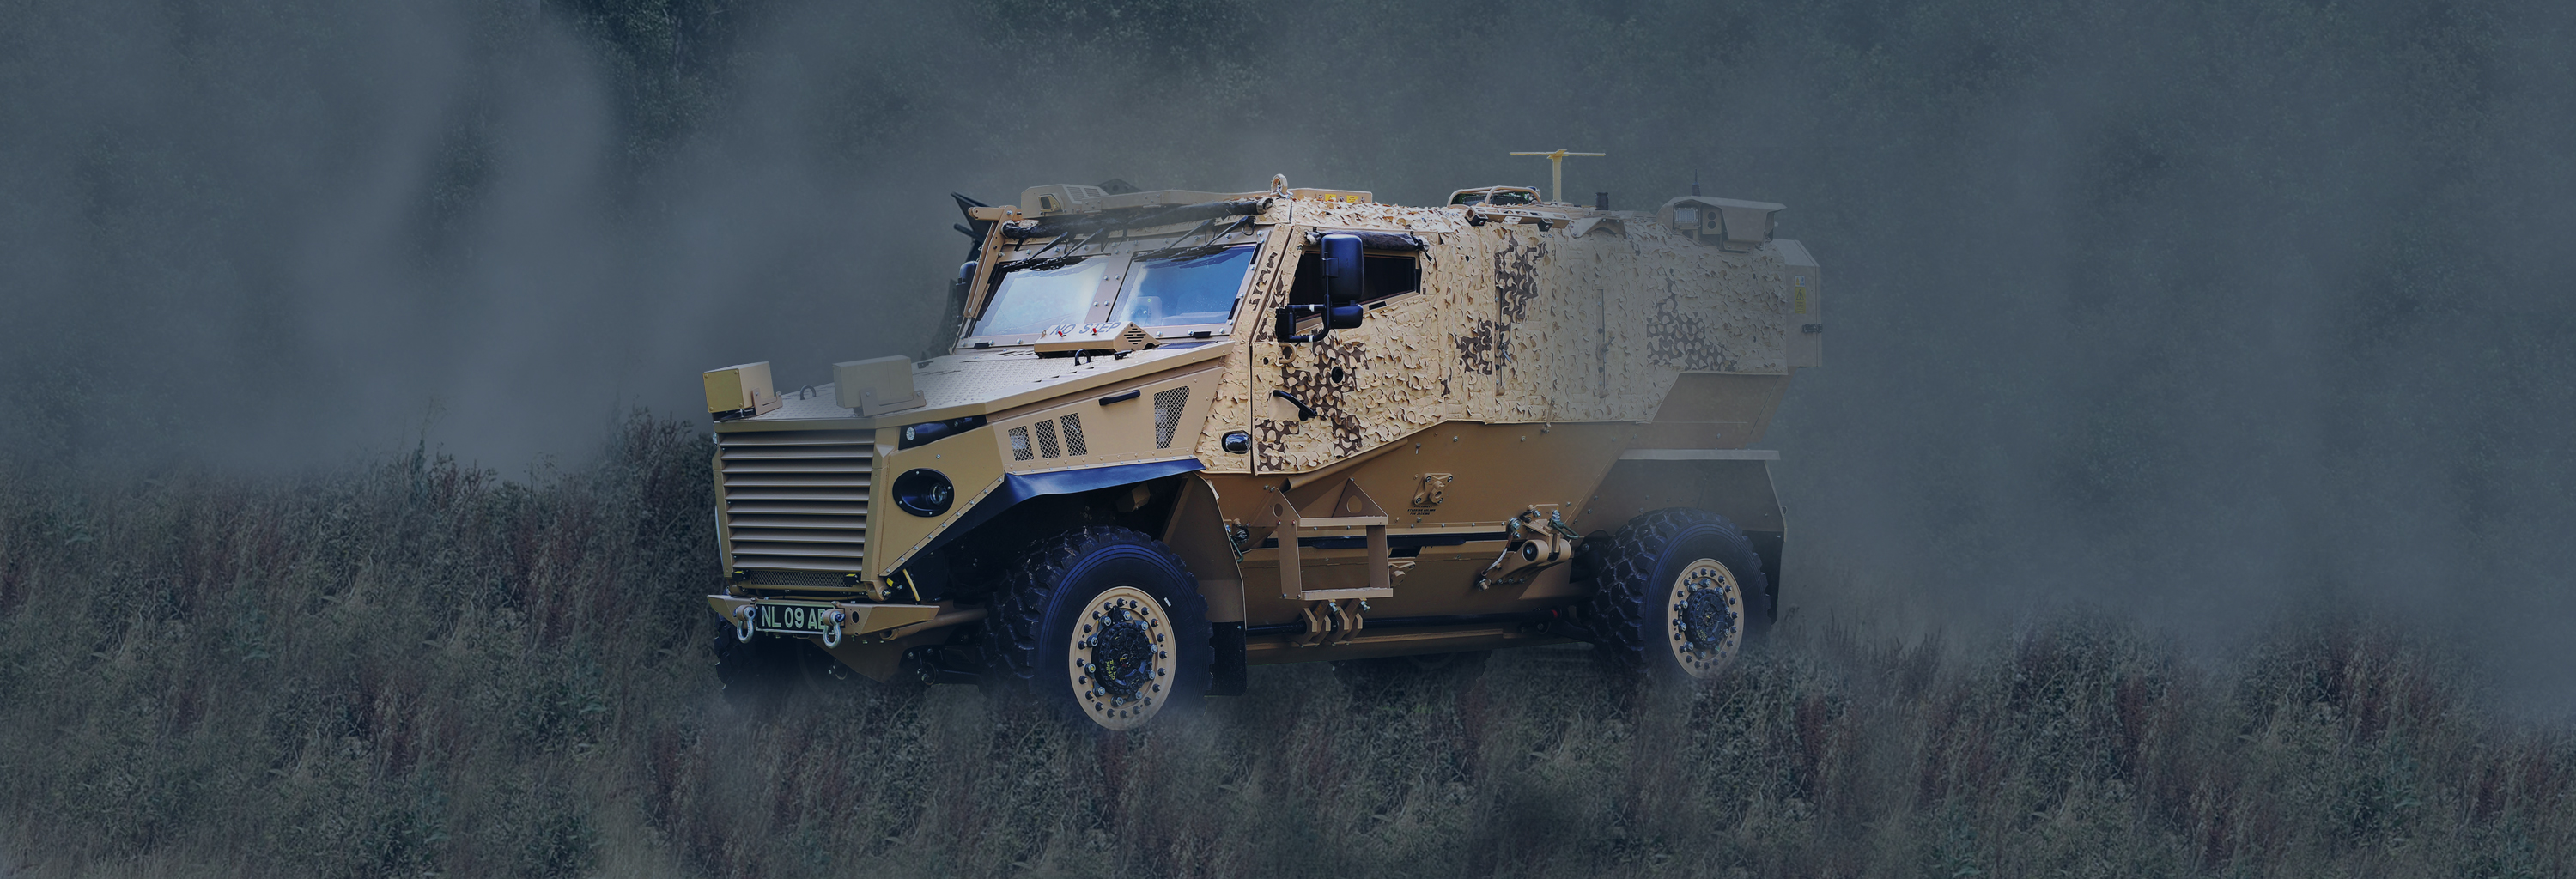 Foxhound military vehicle